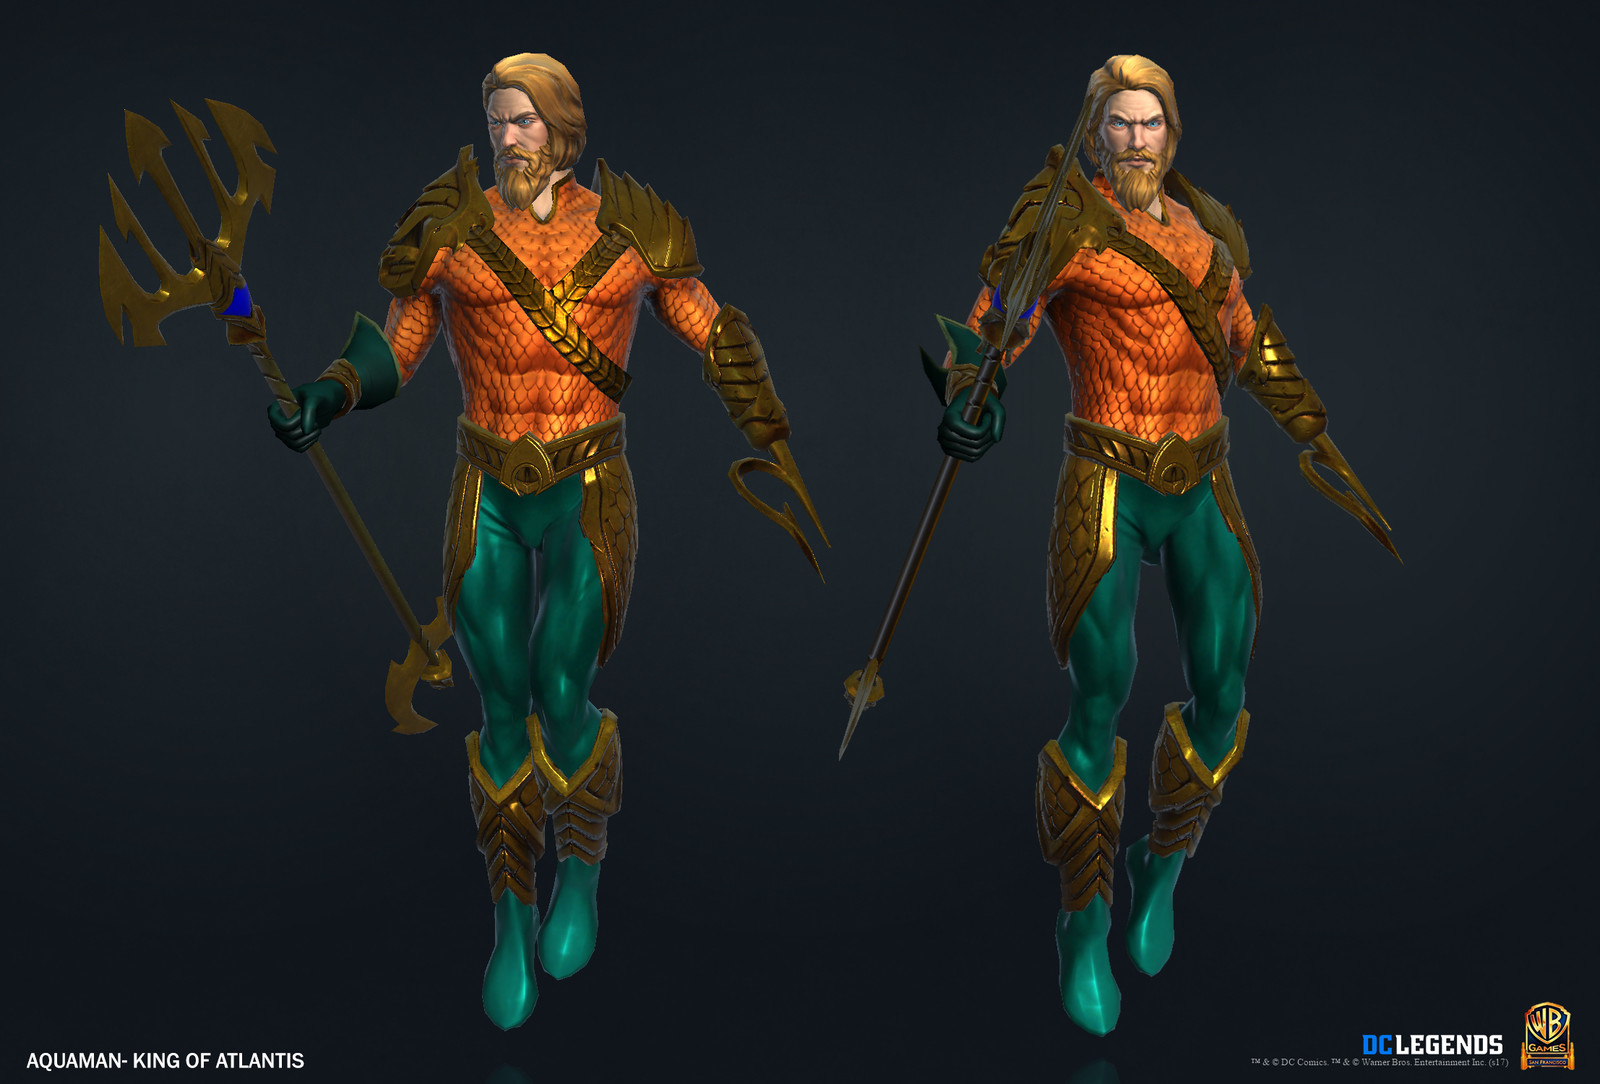 Aquaman Legendary High Poly, Low Poly and Textures/Material work done by me. Additional Texture/Material pass done by Josiah Martinez.